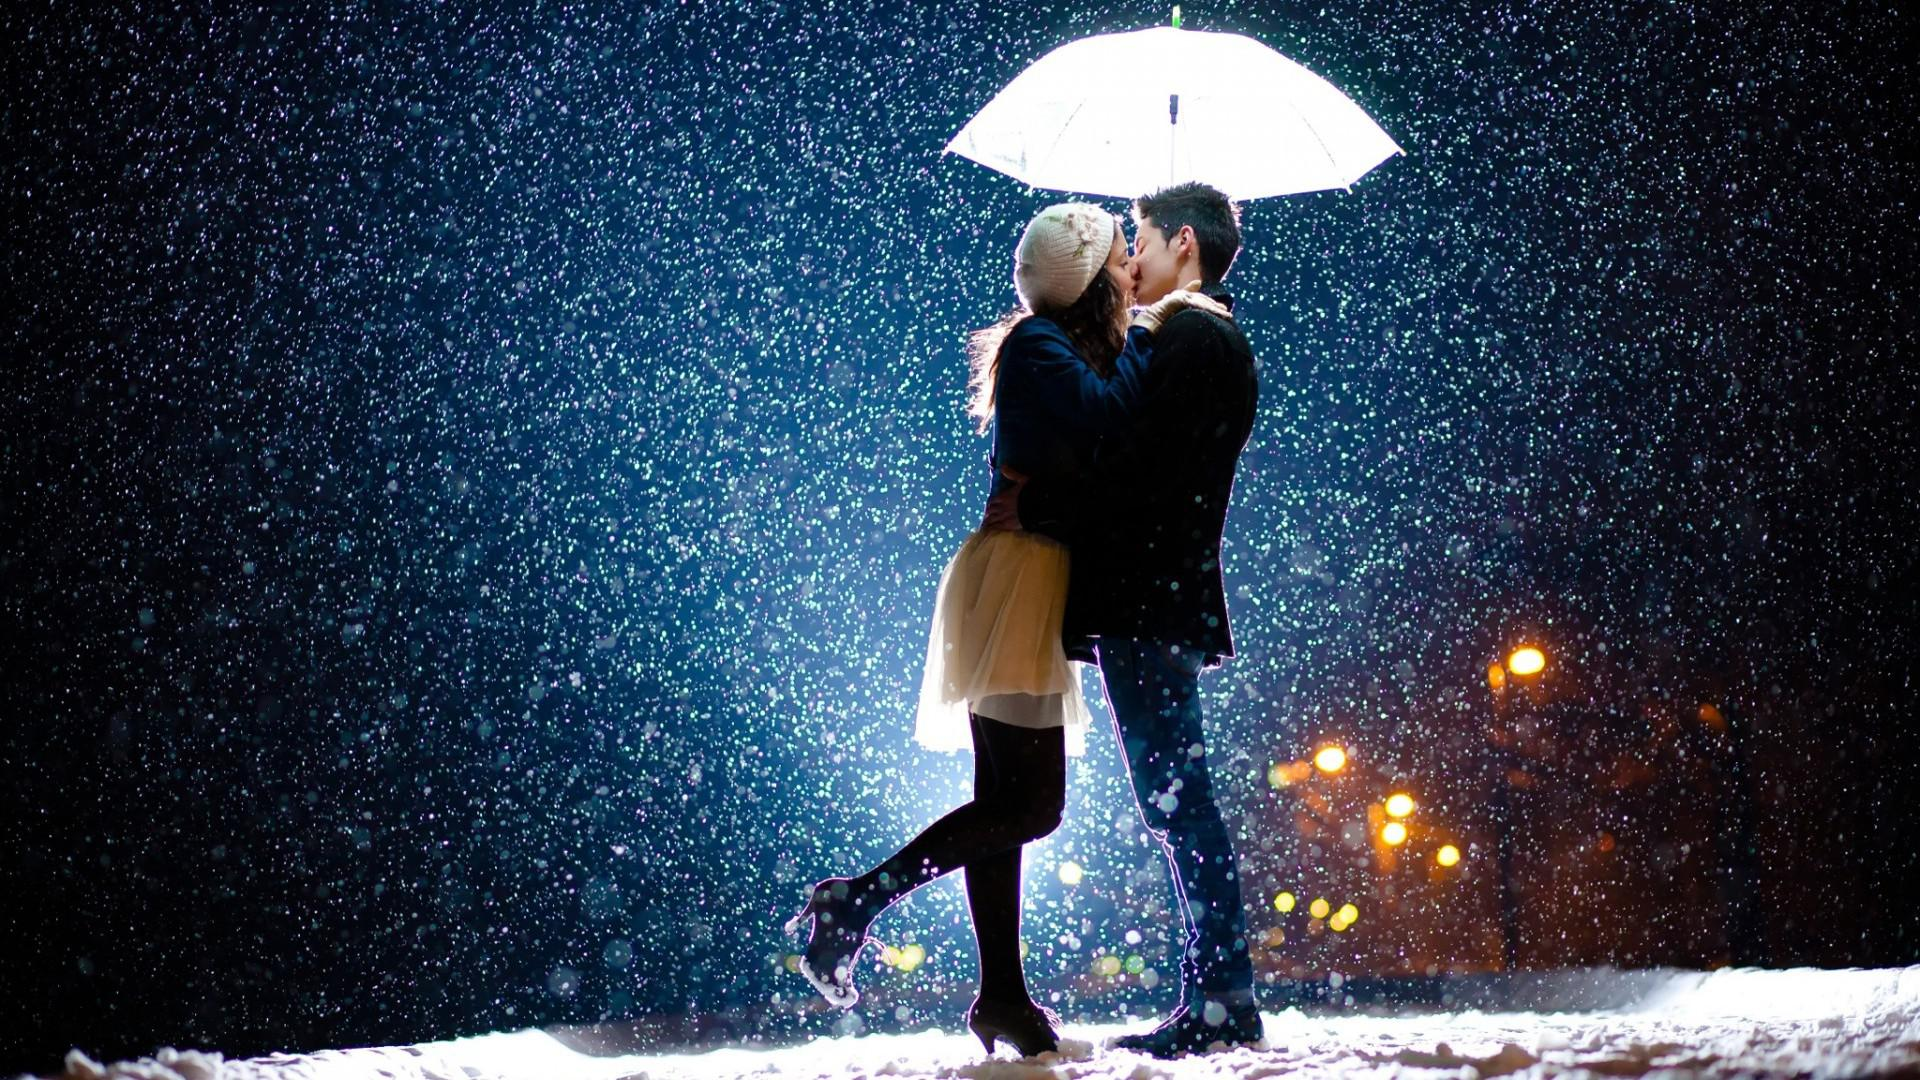 couple_snow_rain_love